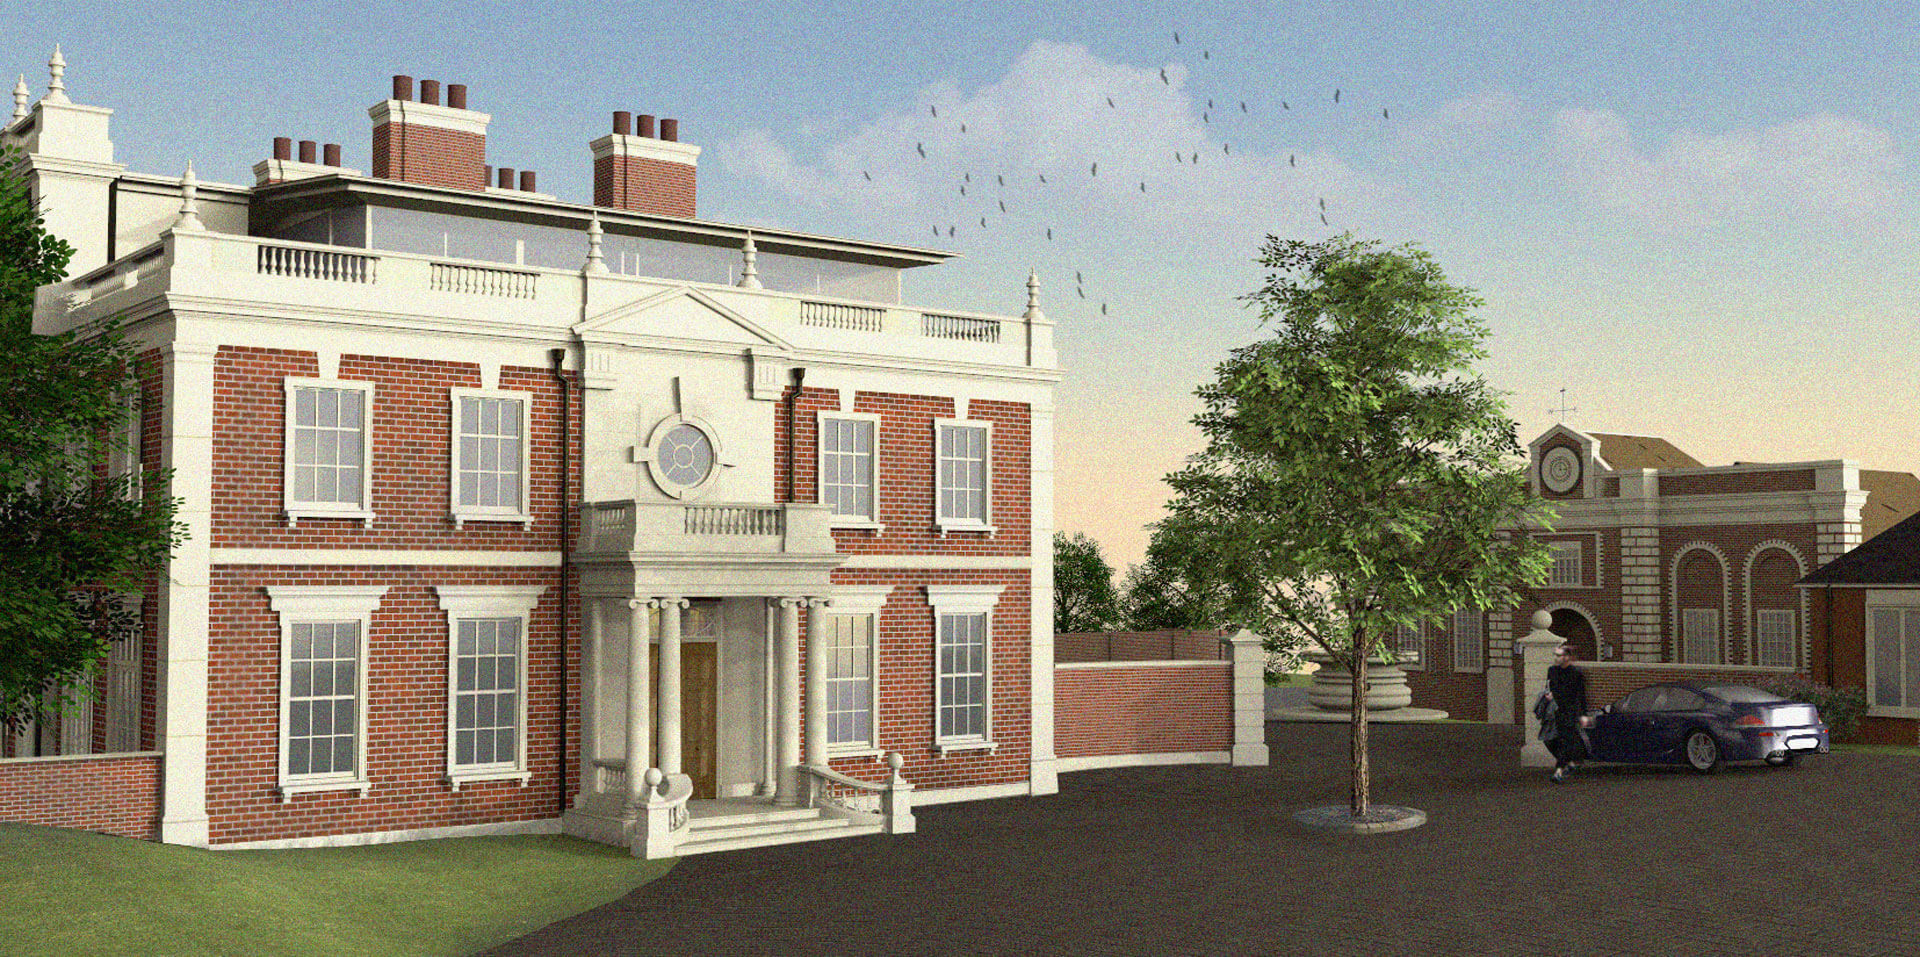 New house in Hertfordshire